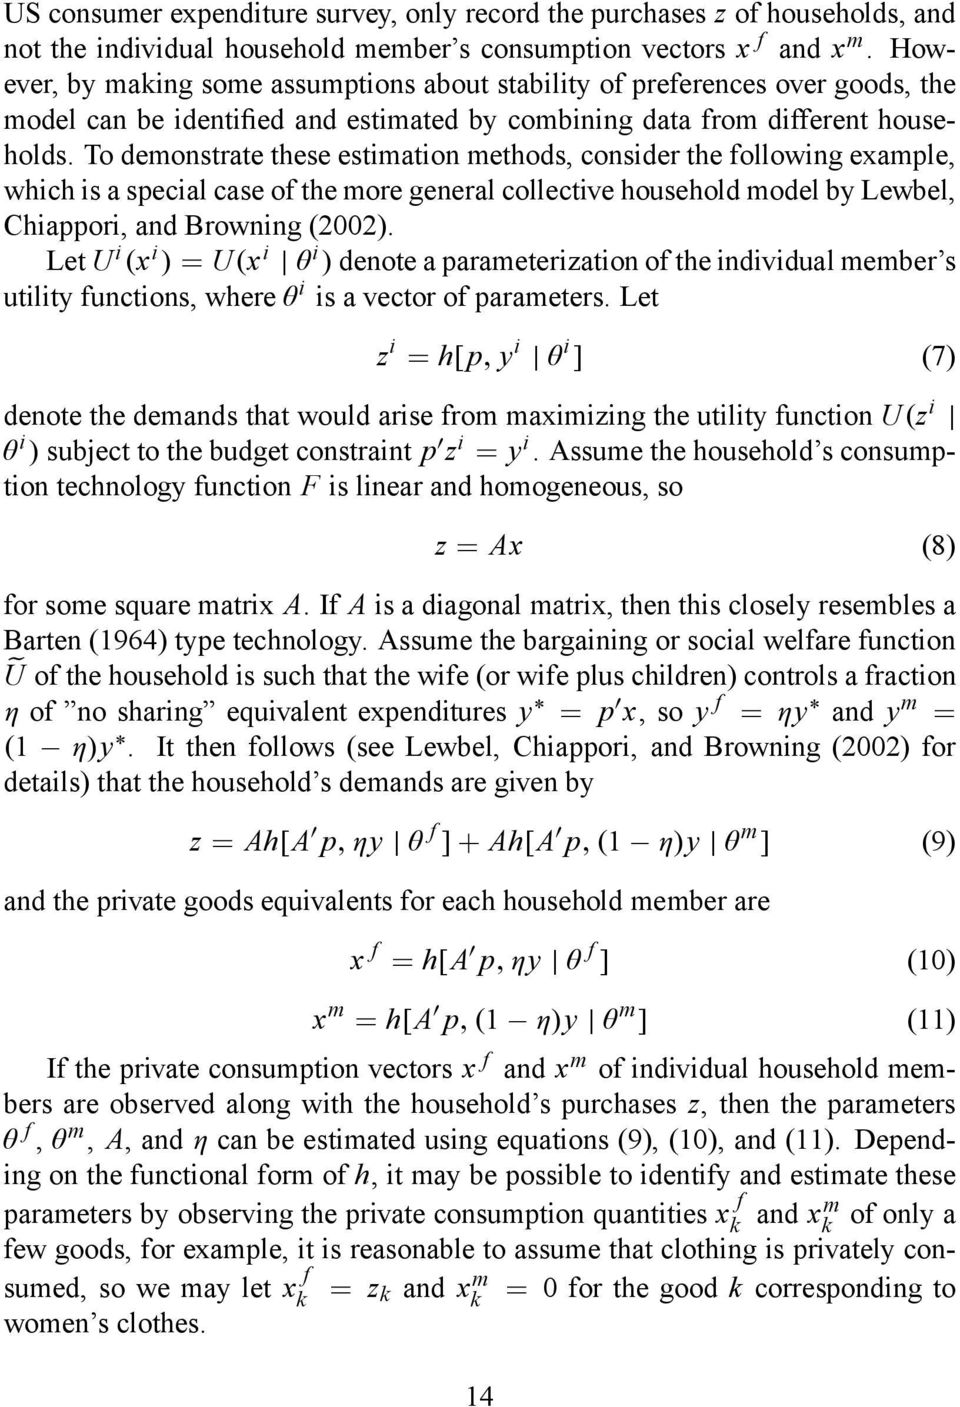 To demonstrate these estimation methods, consider the following example, which is a special case of the more general collective household model by Lewbel, Chiappori, and Browning (2002).